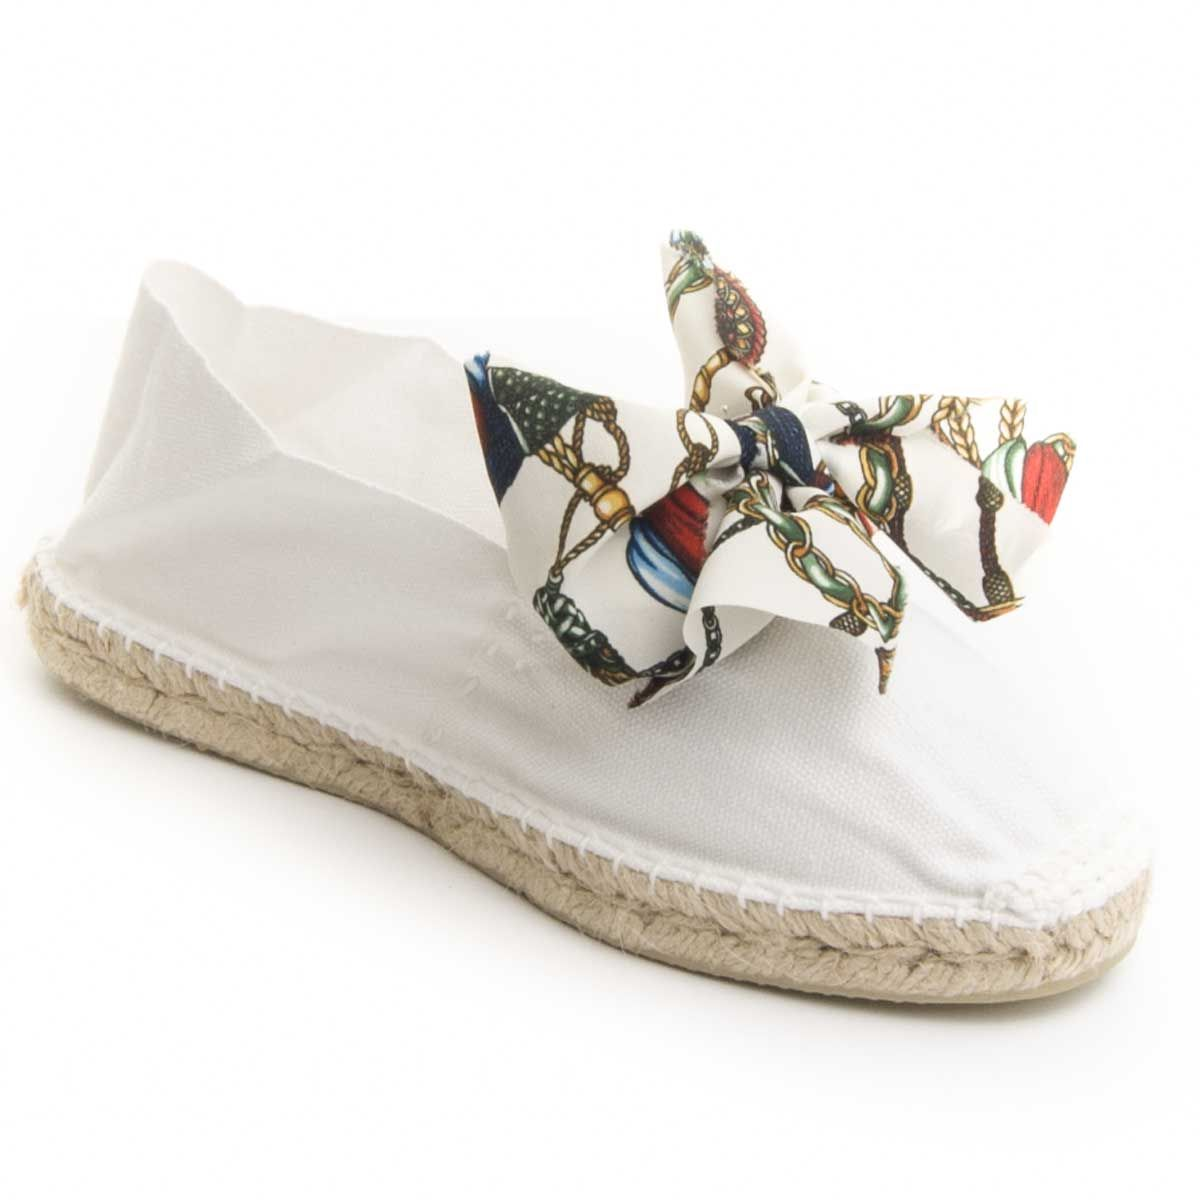 Maria Graor Bow Front Espadrille in White